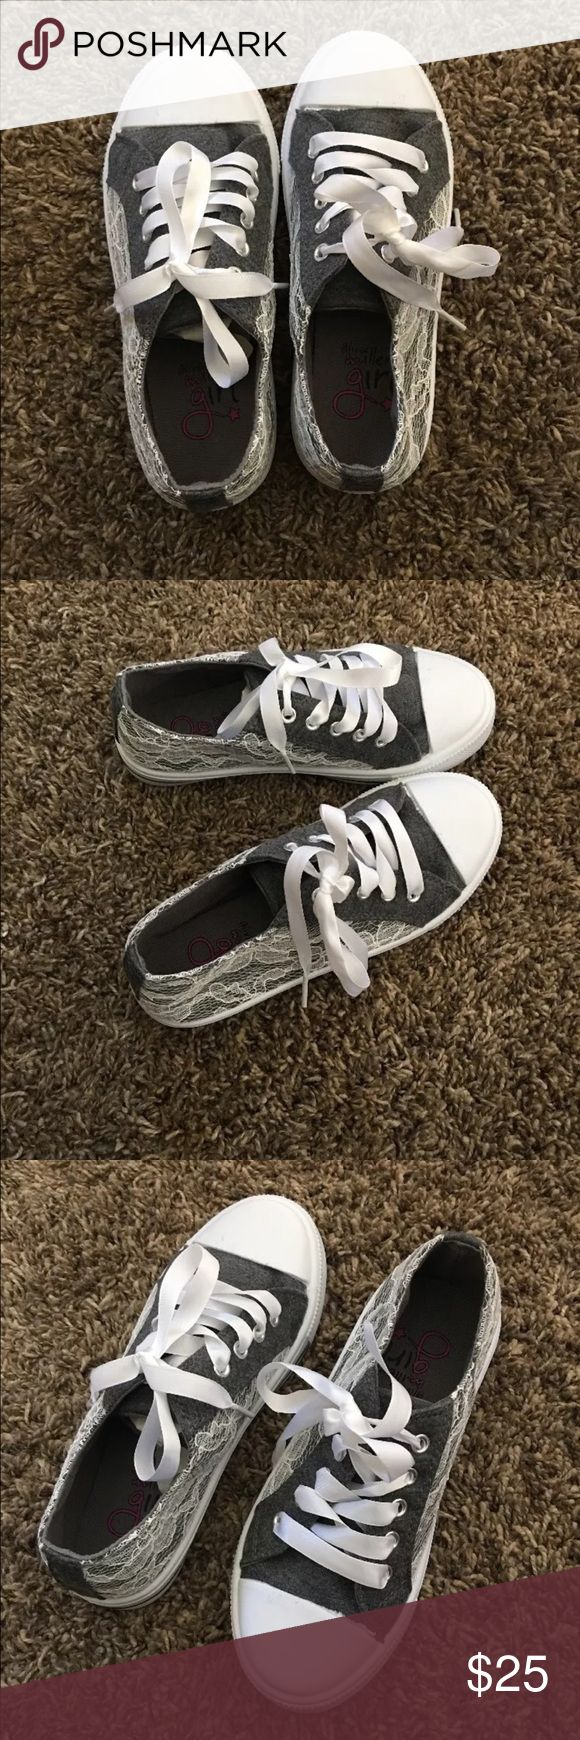 Gray sneakers for girls. Size 13.New in box Looks very cute gray sneakers with white flower lace decorative in size 13. Brand new with box( box without lid) Please see pictures and let me know if you have any questions.  Thanks for looking. Olivia Miller girl Shoes Sneakers